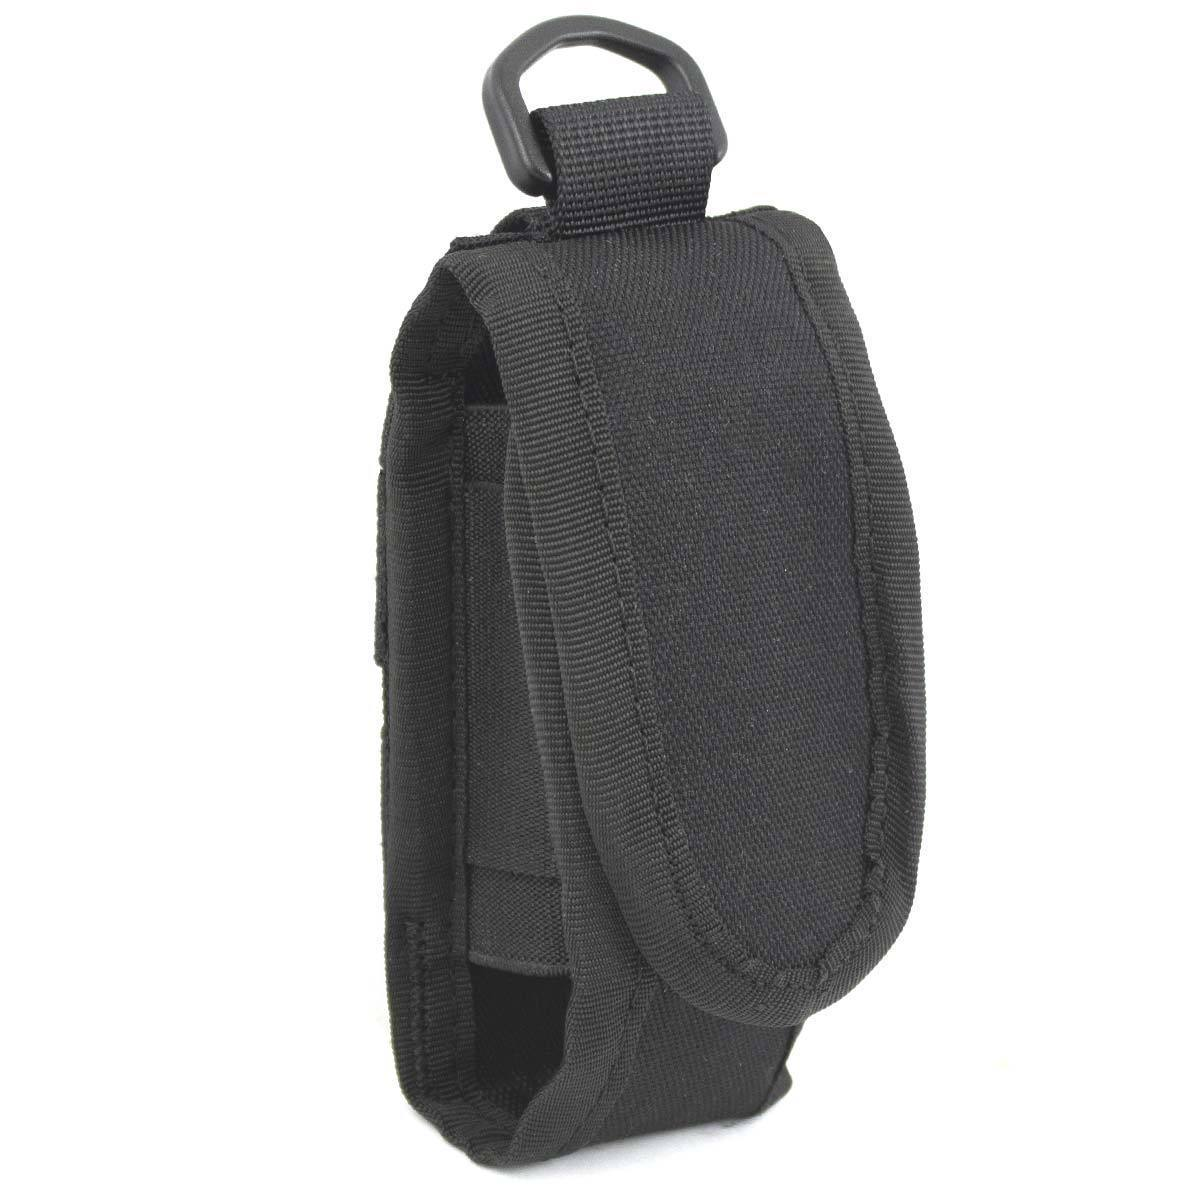 Bulldog Folding Knife Tool Pouch Black | Bulldog Tactical Gear